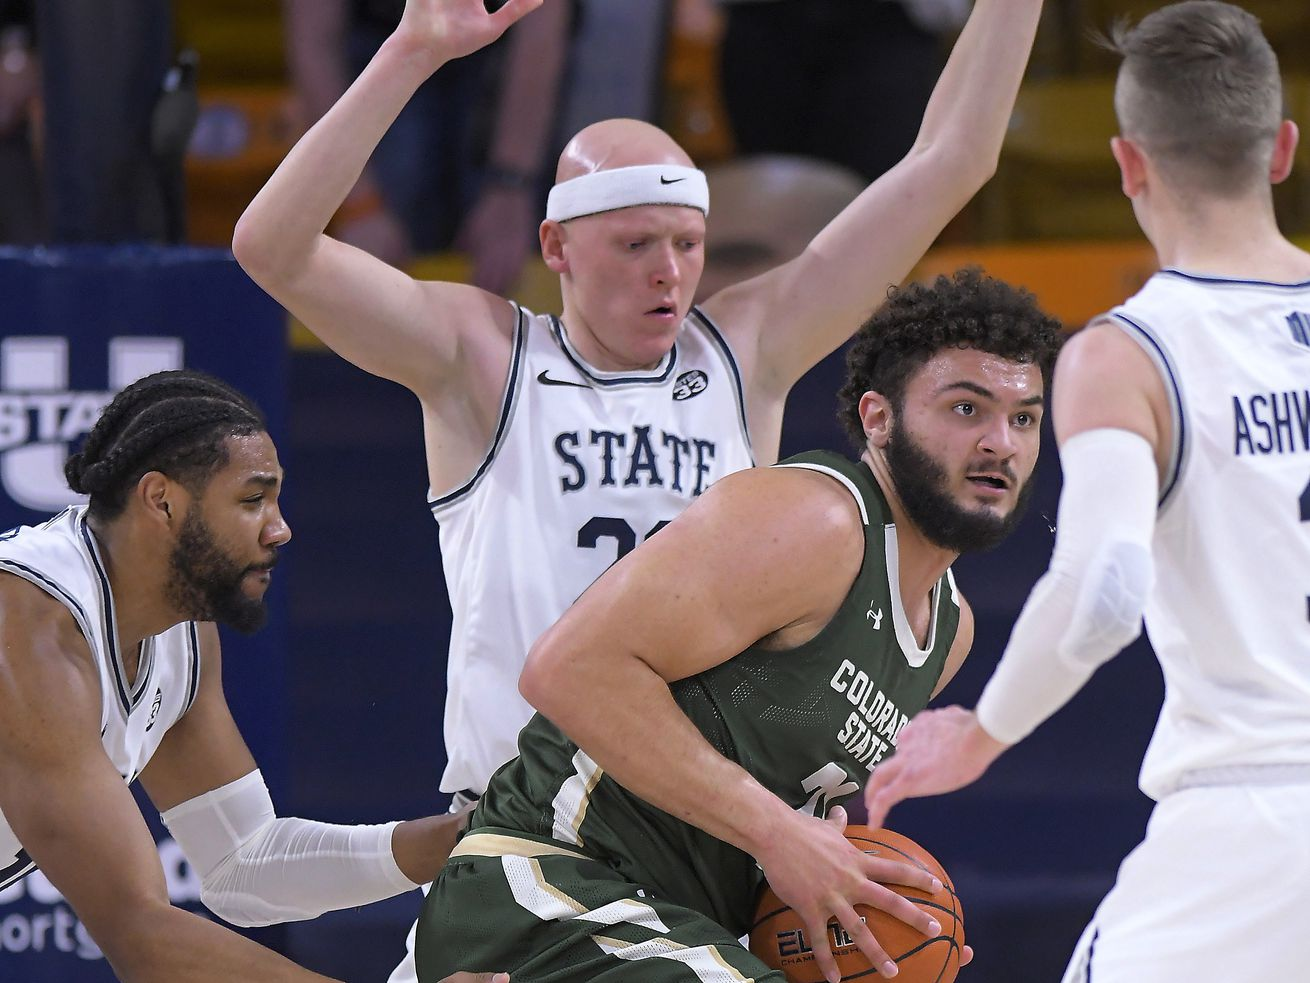 Utah State's defense doesn't hold up as win streak snapped at 11 with loss to Colorado State